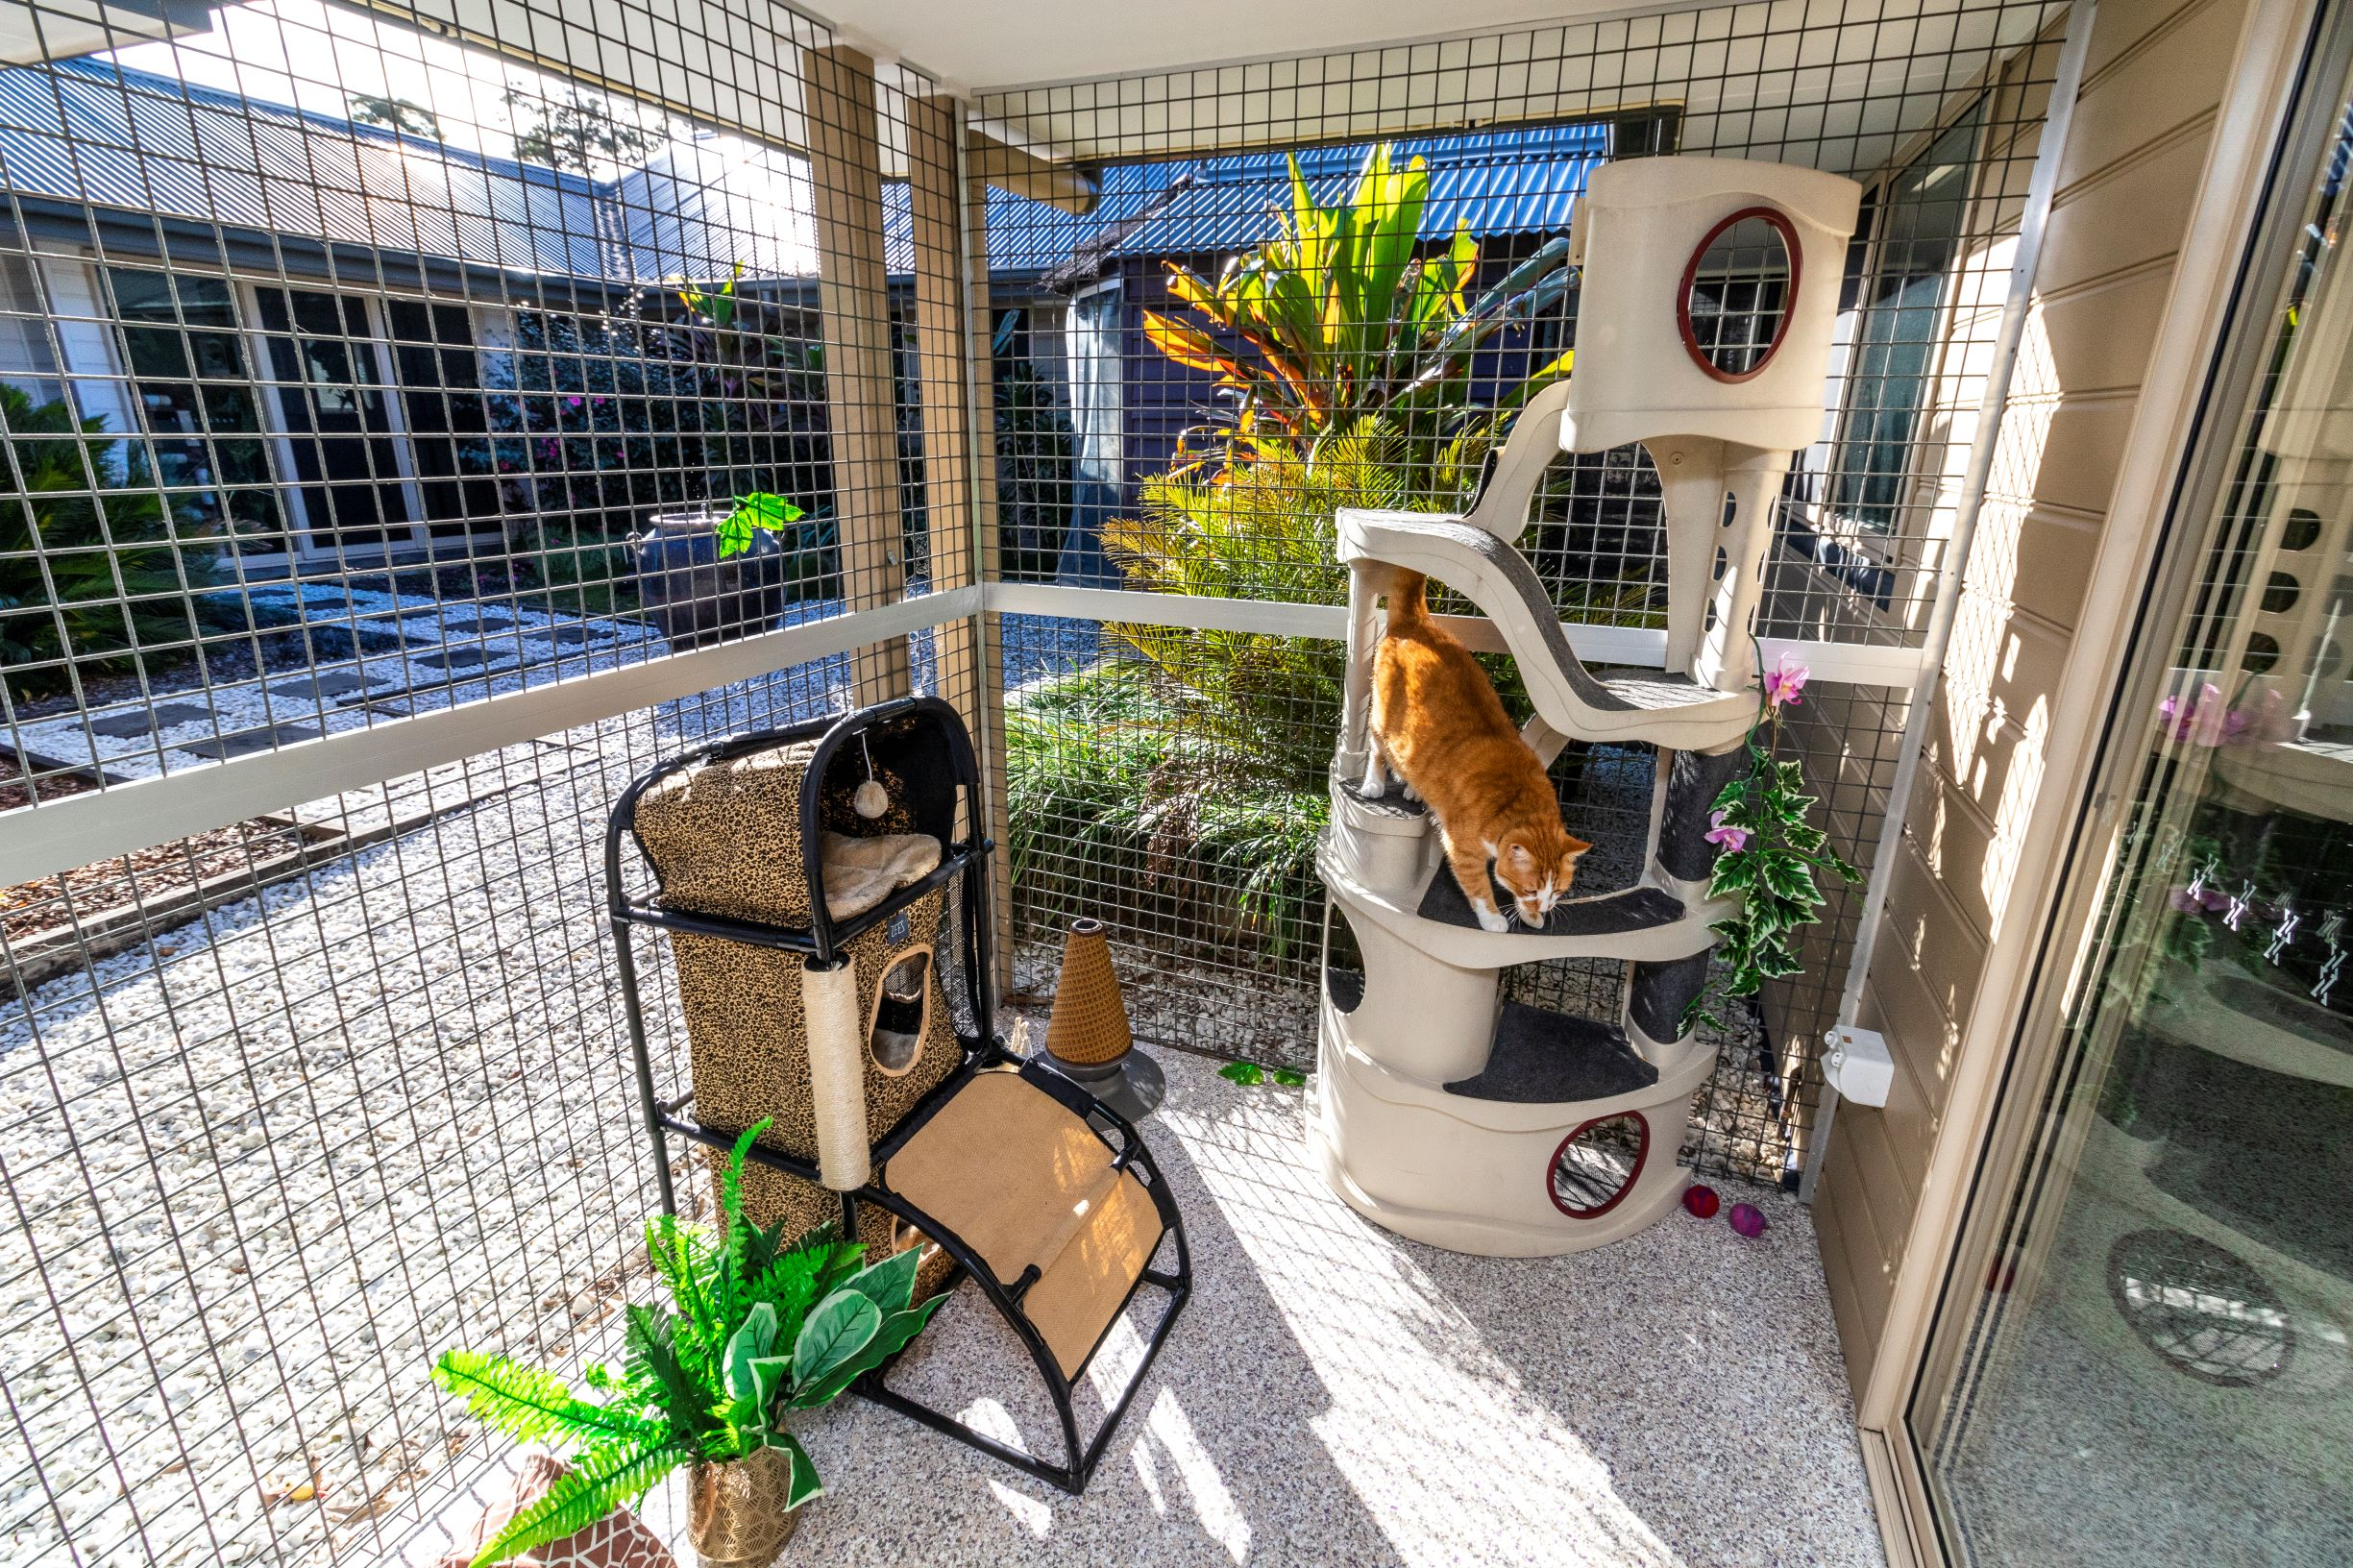 Outdoor Play Area gallery image